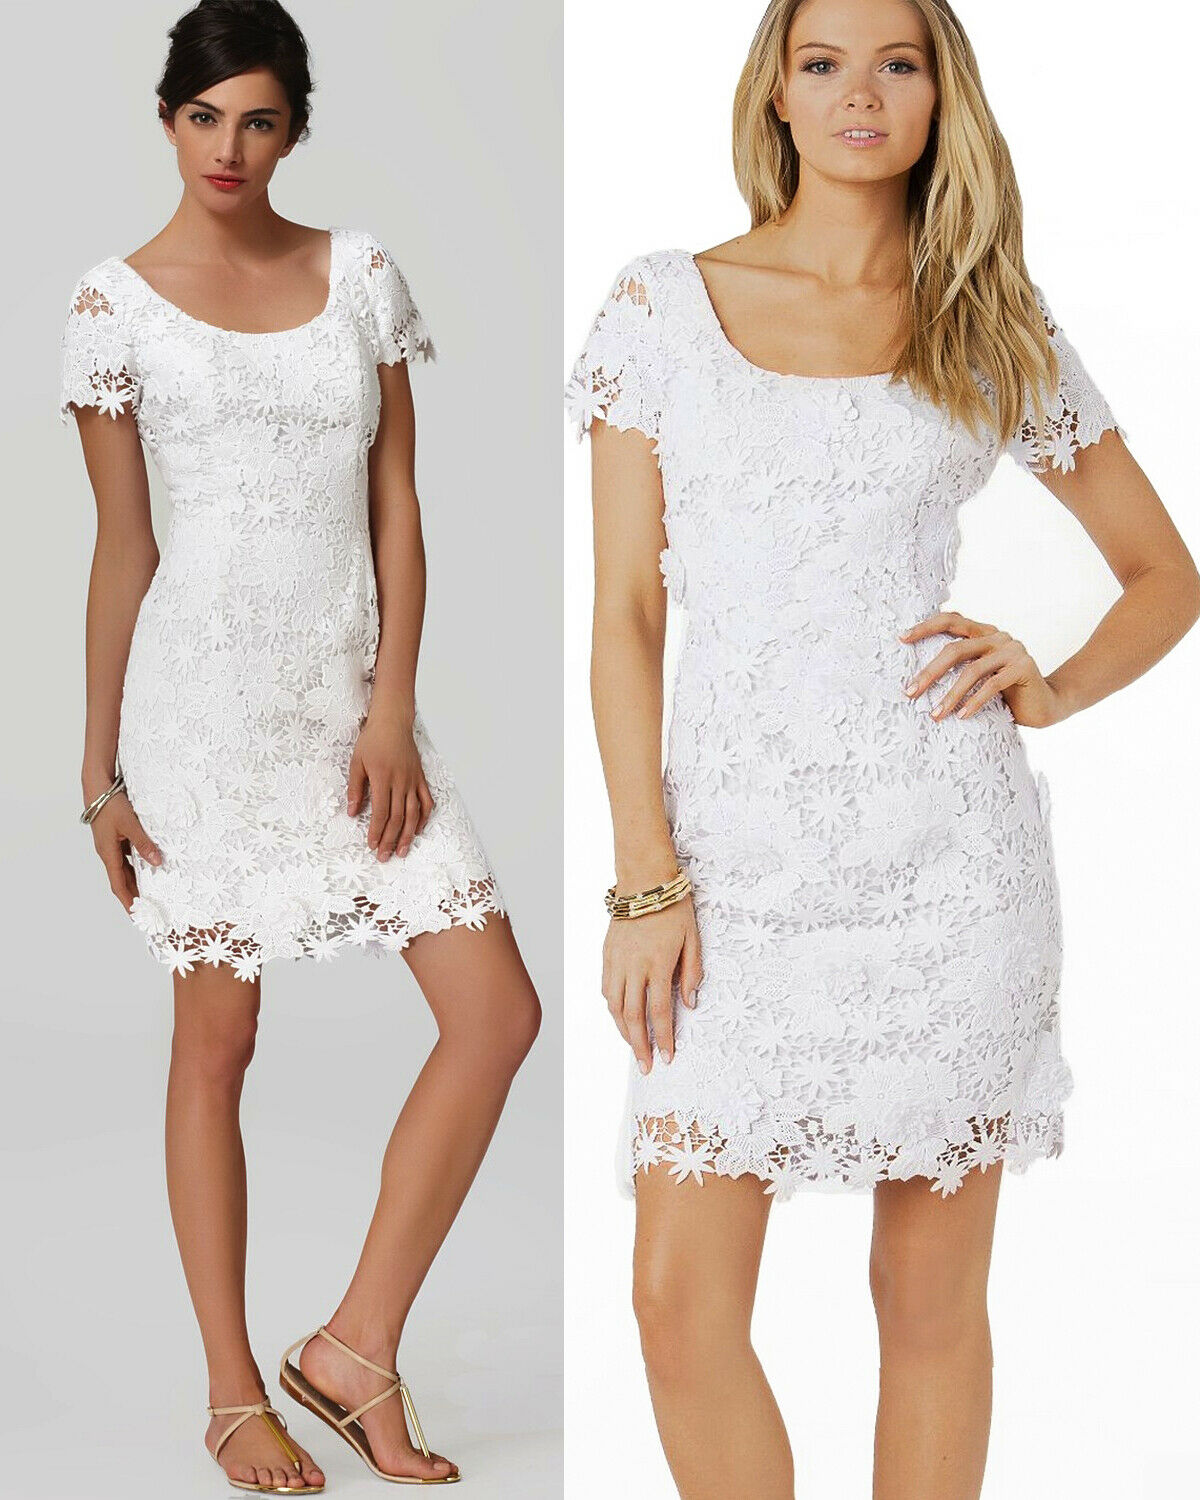 398 Lilly Pulitzer Marta Resort White Truly Floral Lace Dress